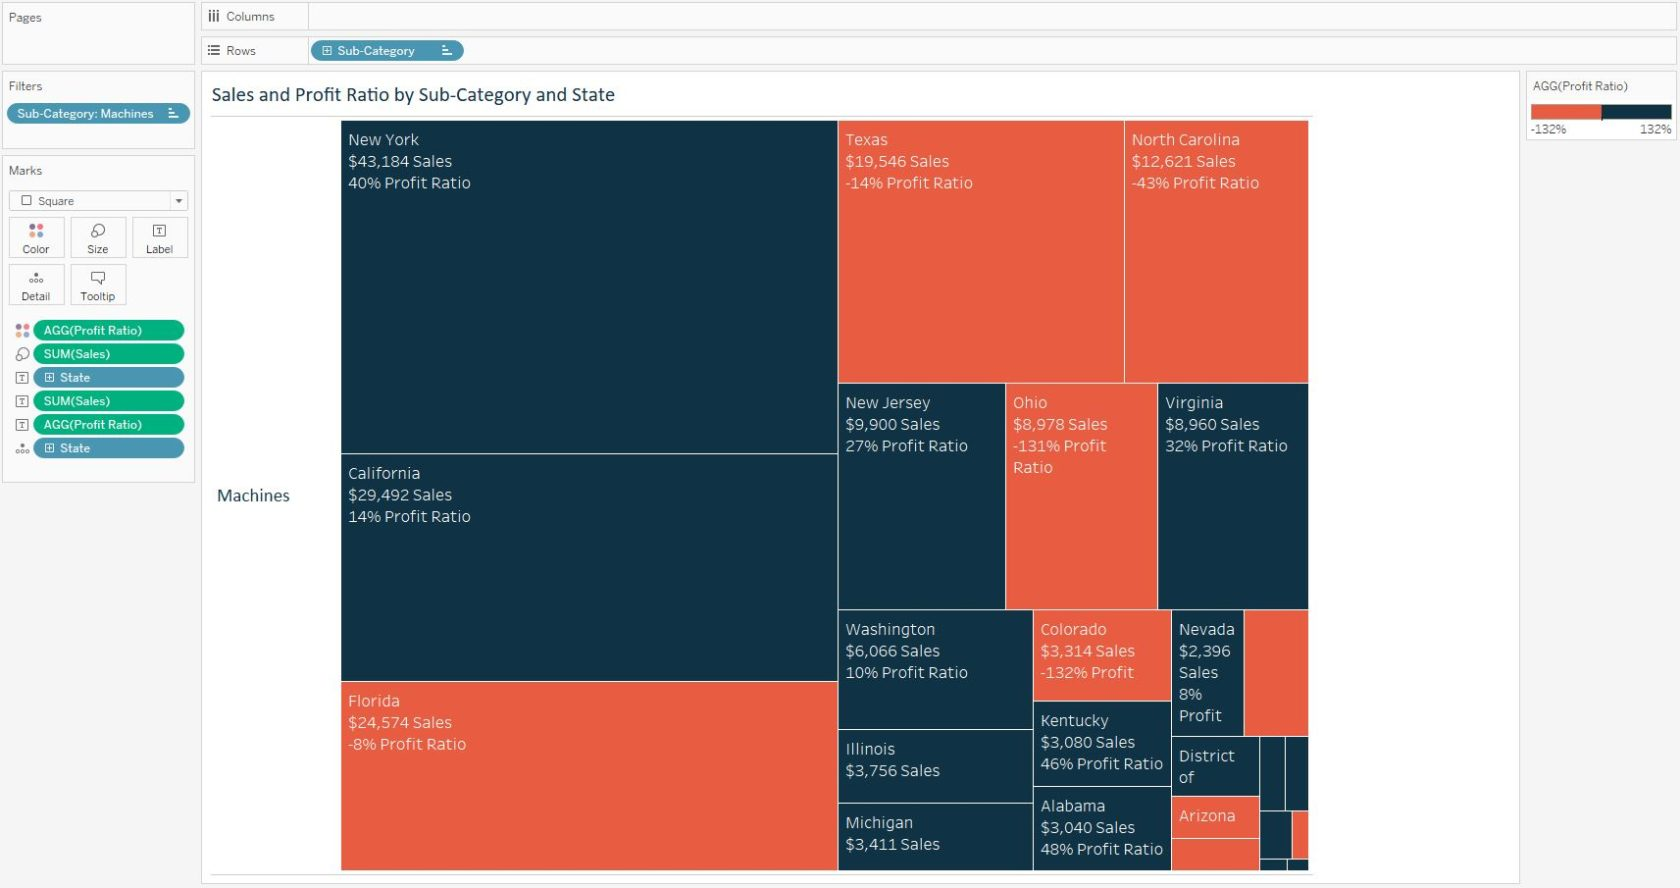 tableau-sales-and-profit-ratio-by-sub-category-and-state-tree-map-filtered